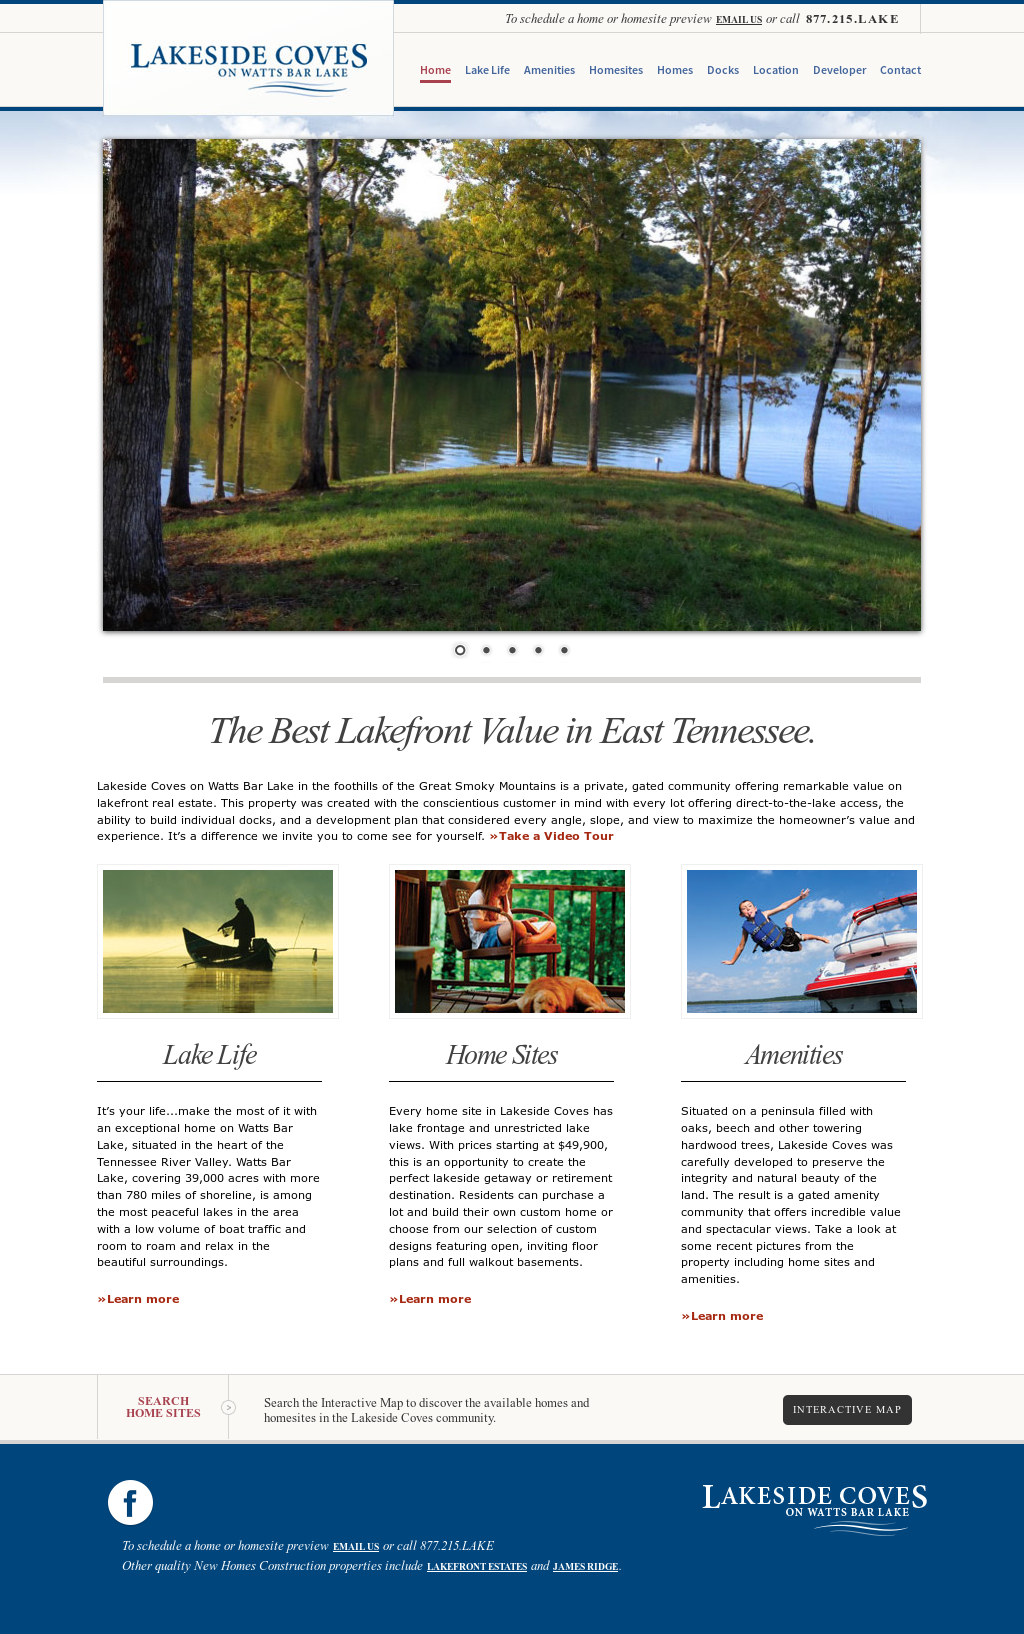 Lakeside Coves On Watts Bar Lake Competitors, Revenue and